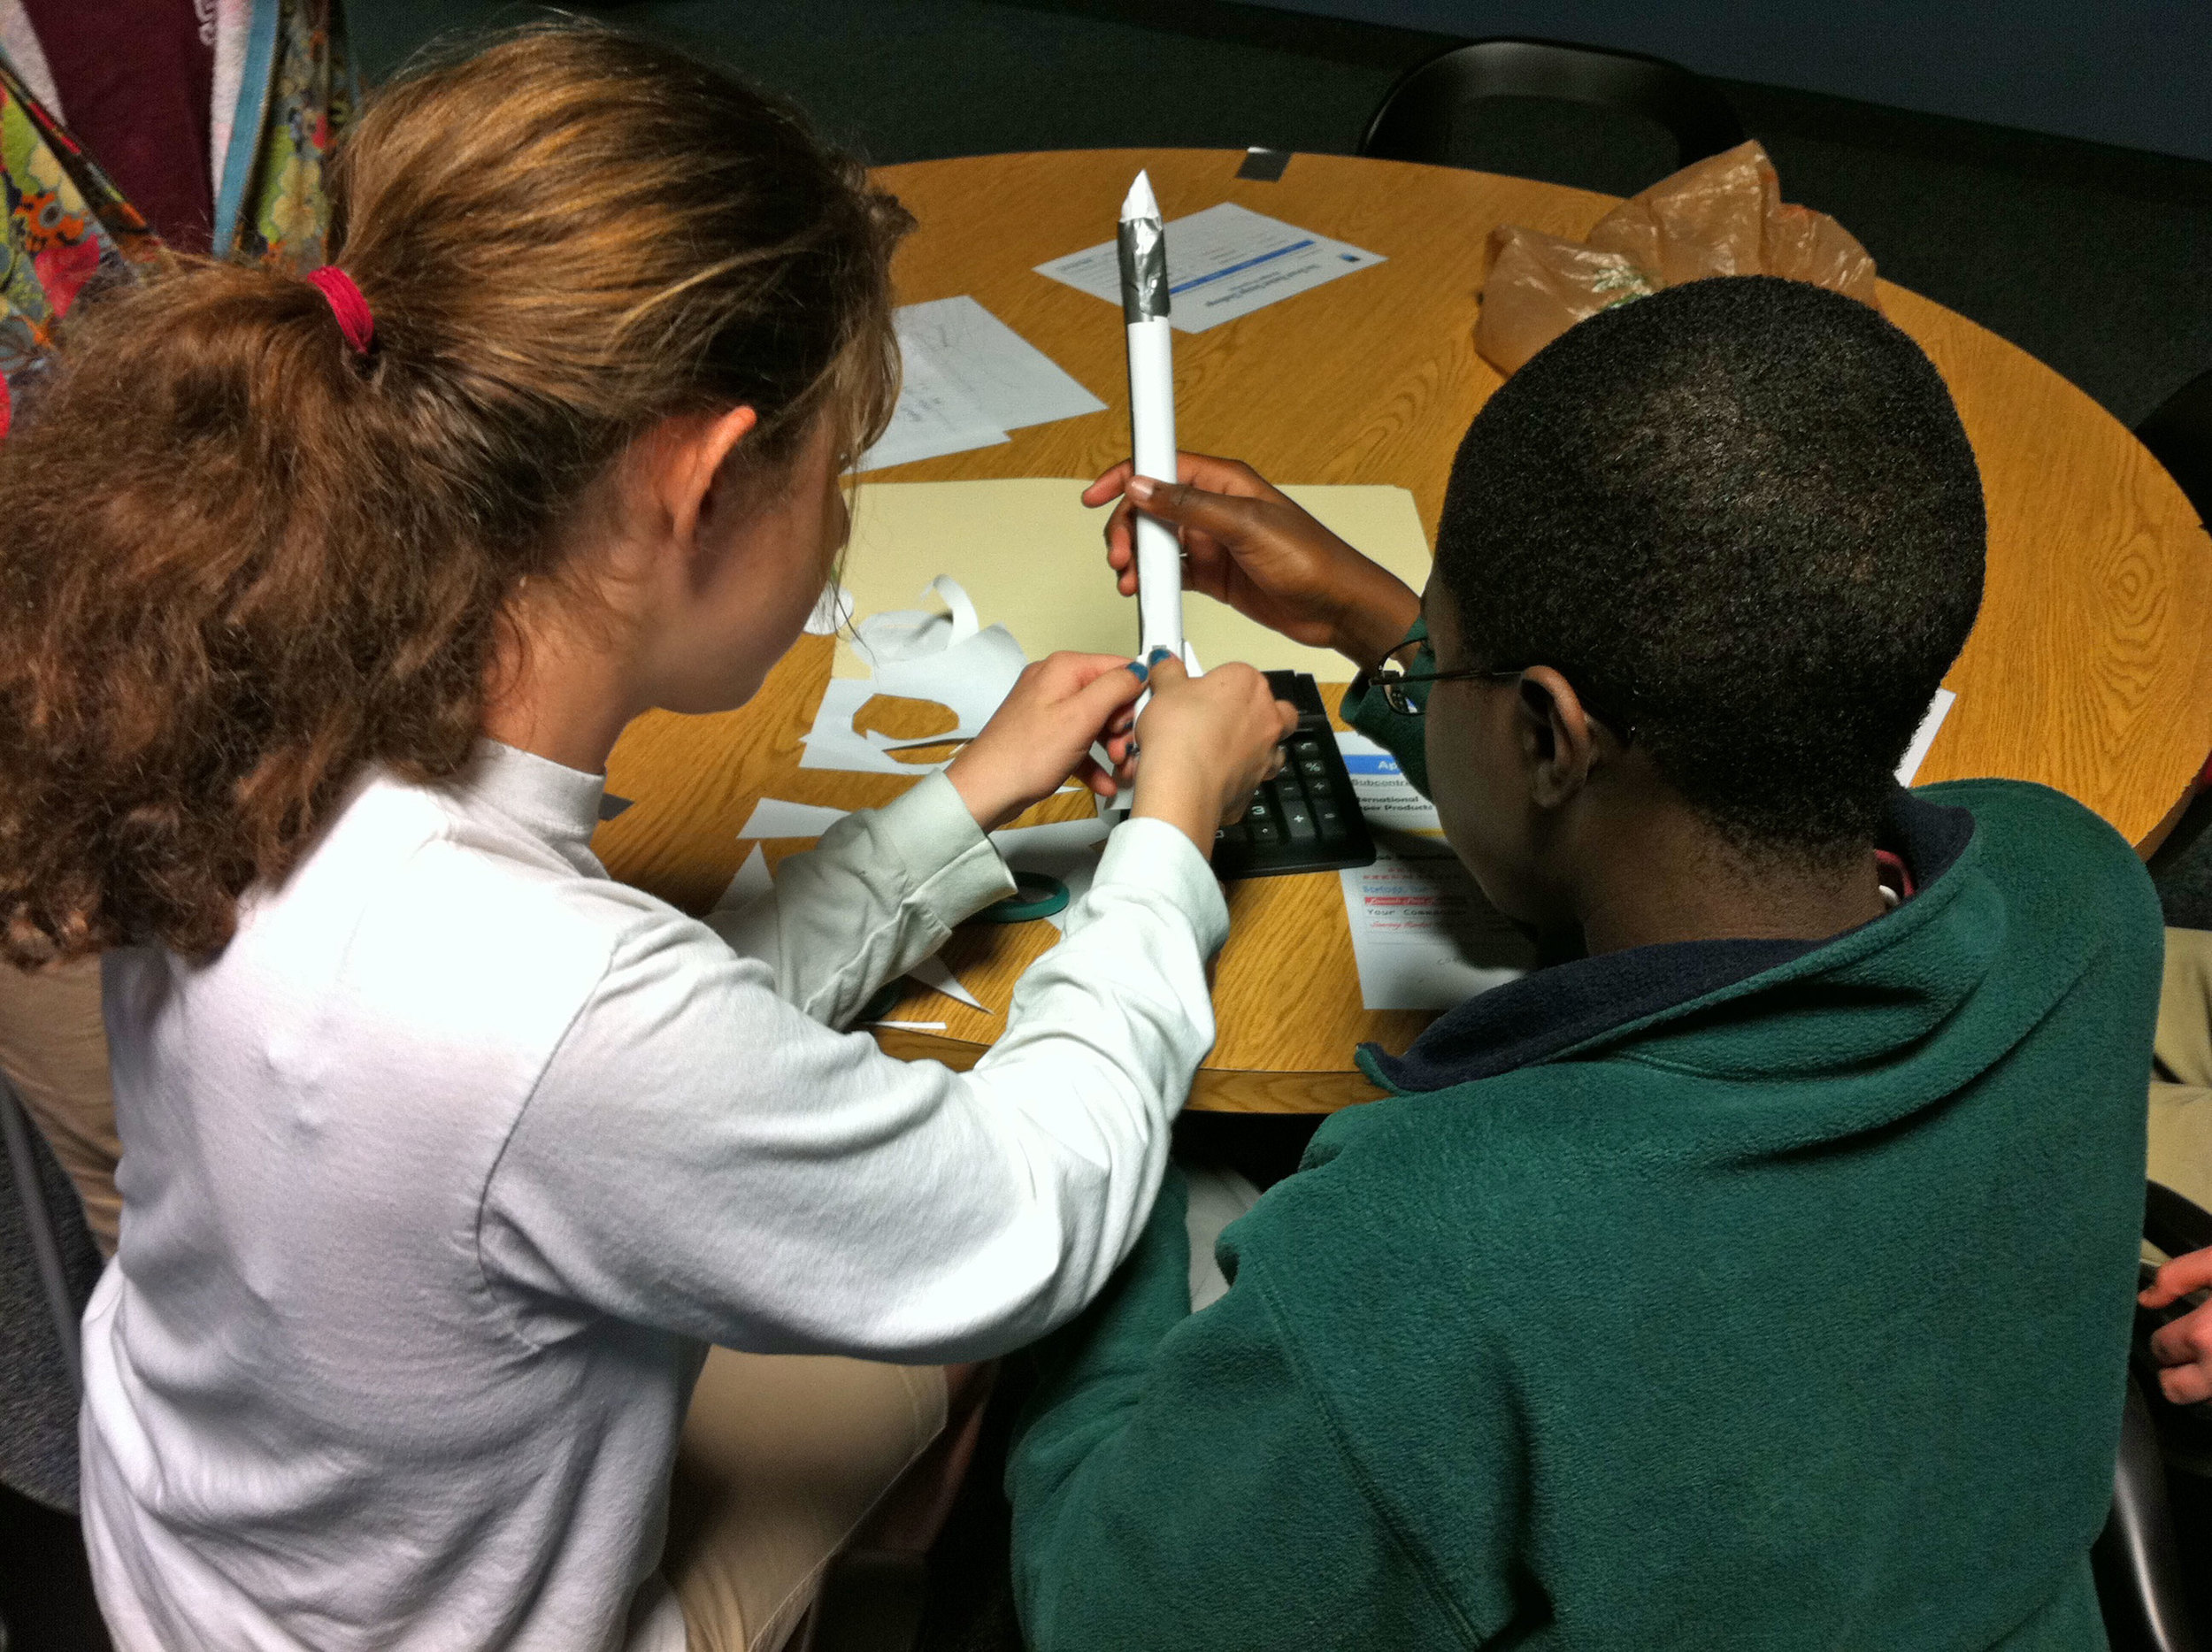 In our Great Rocket Design Challenge, teams build then launch an air-powered rocket.